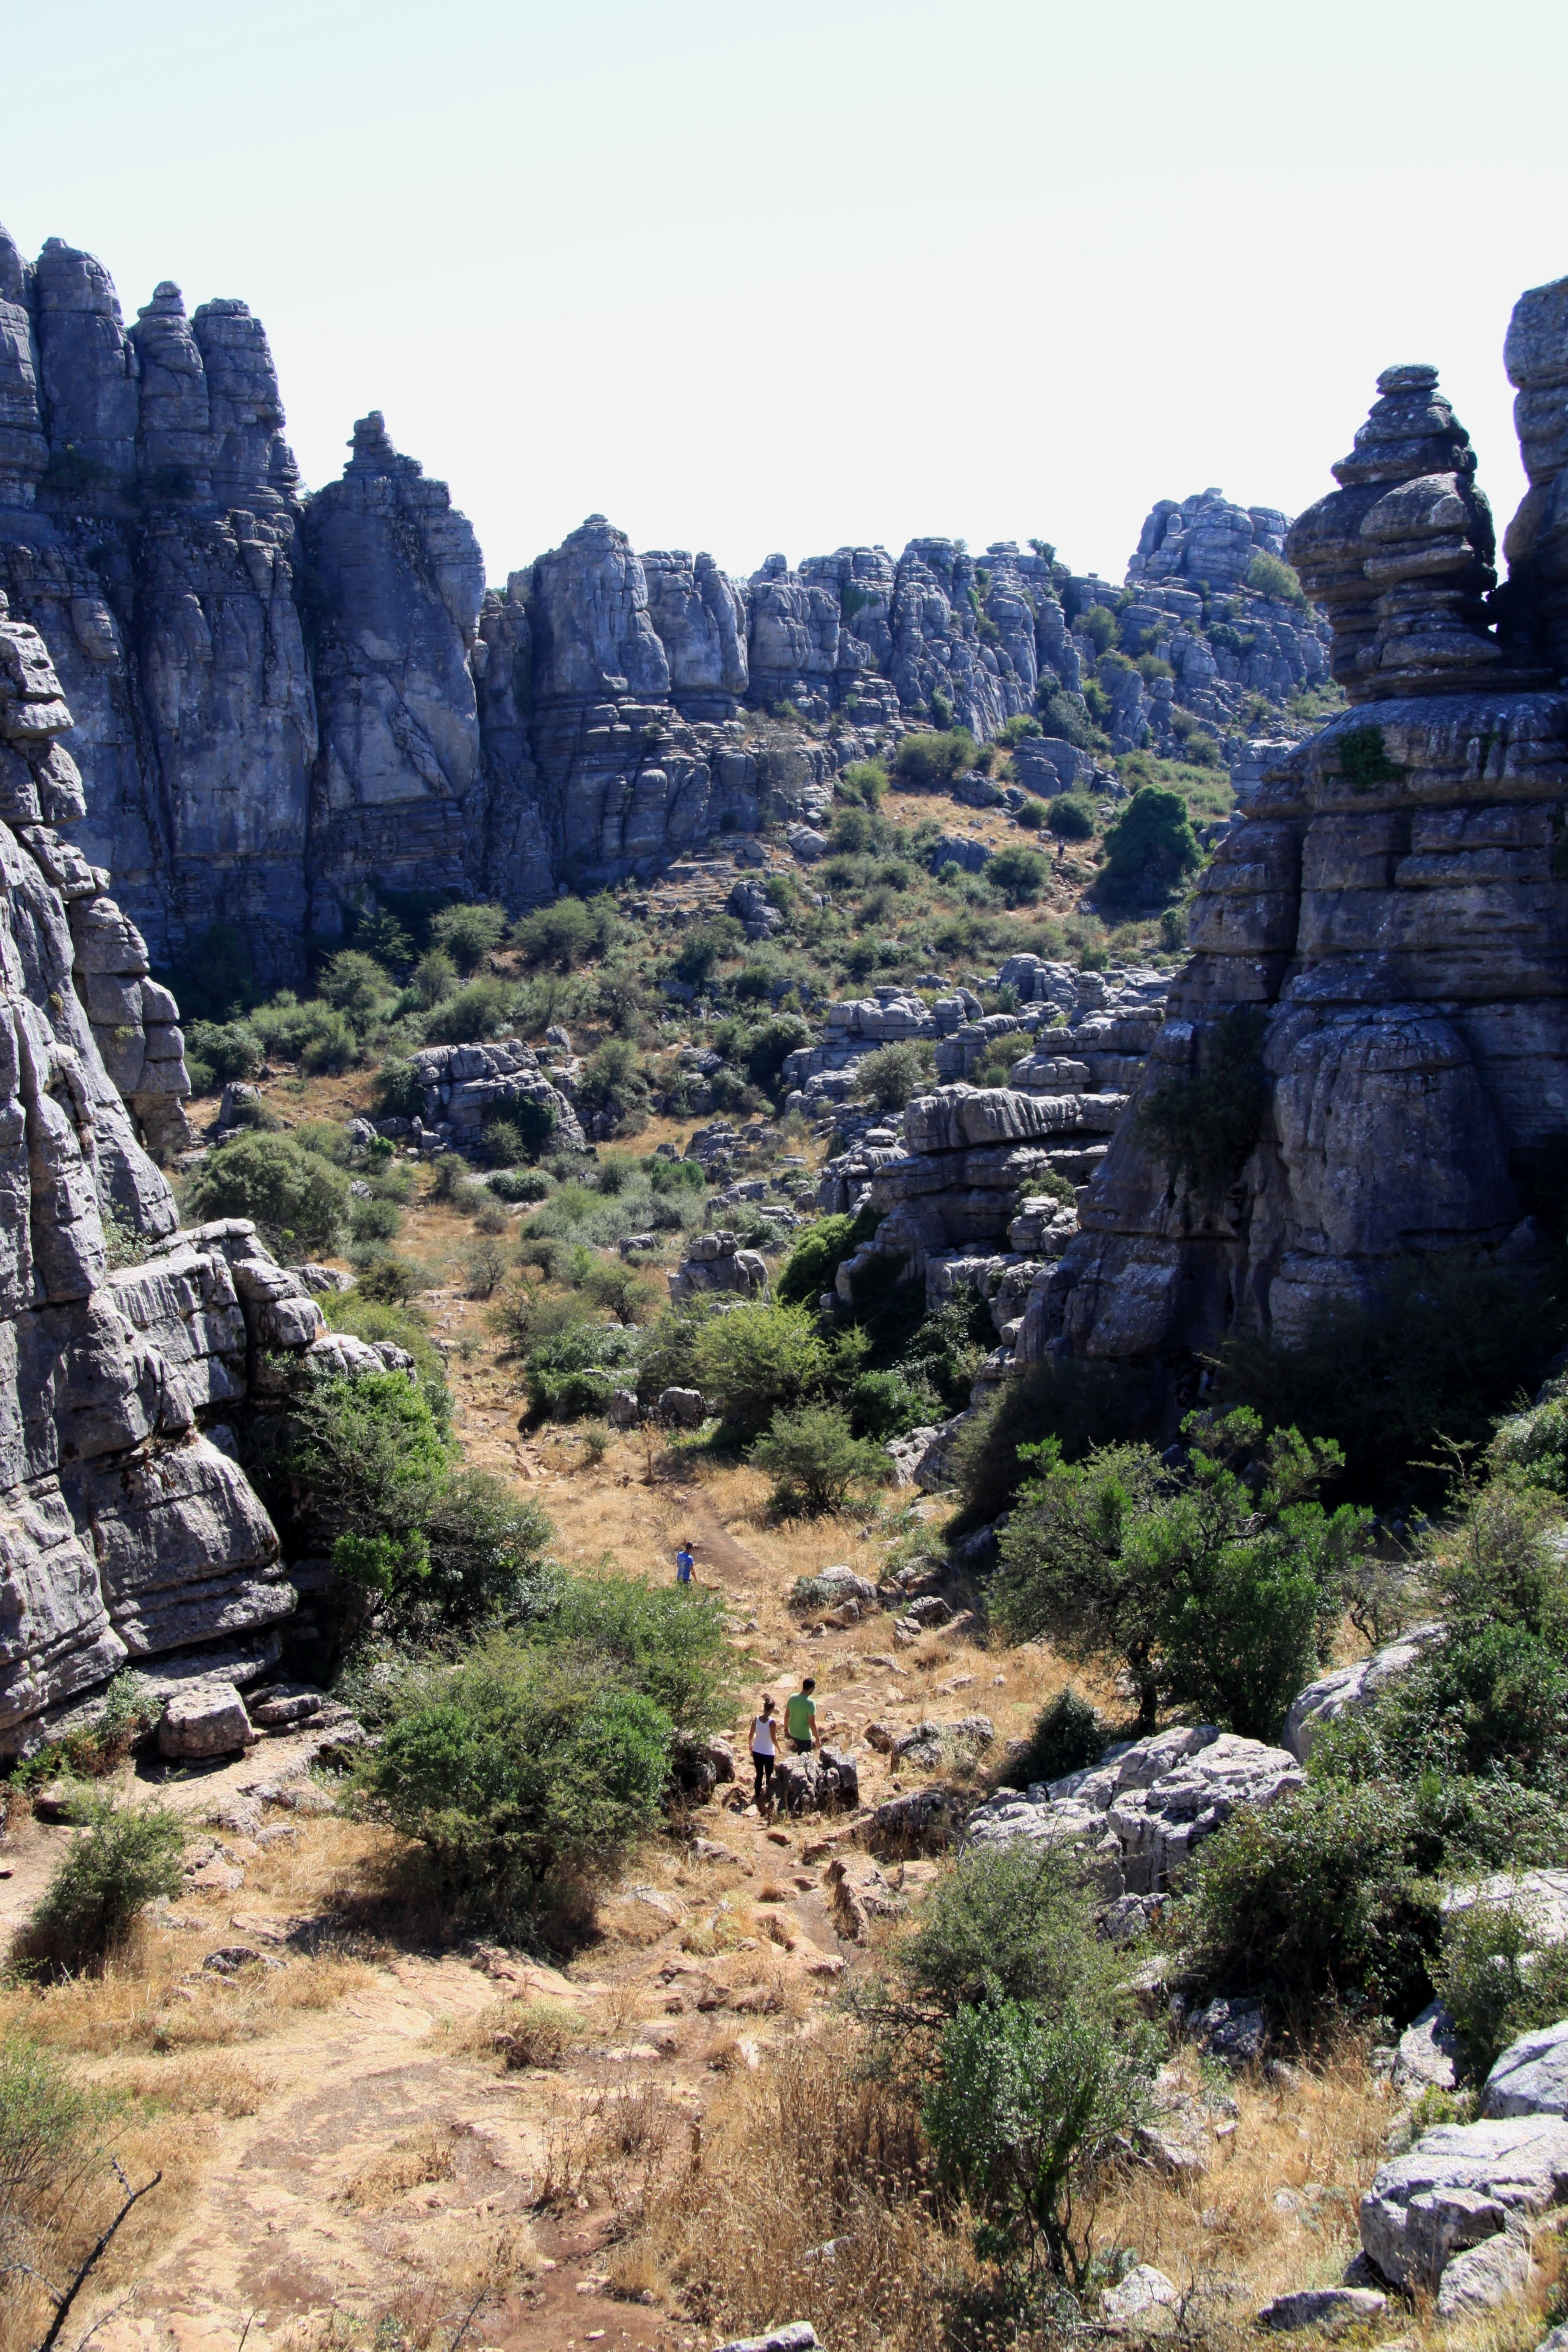 El_Torcal_Antequera_andalucia_andrew_forbes_dramatic_scenery